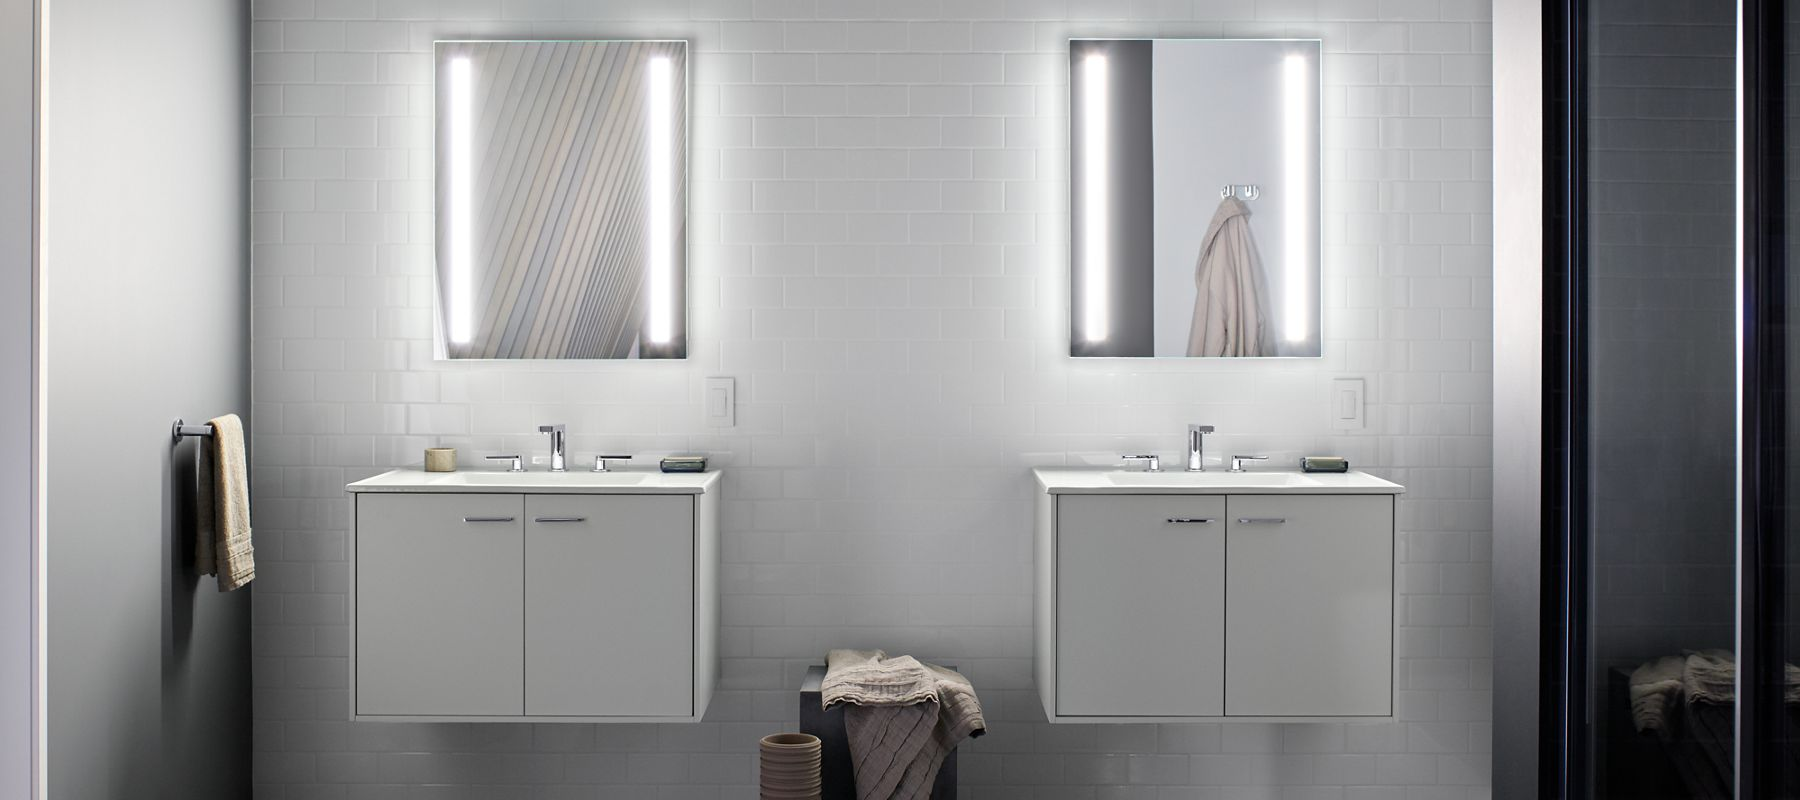 Bathroom Mirrors Kohler bathroom mirrors | bathroom | kohler